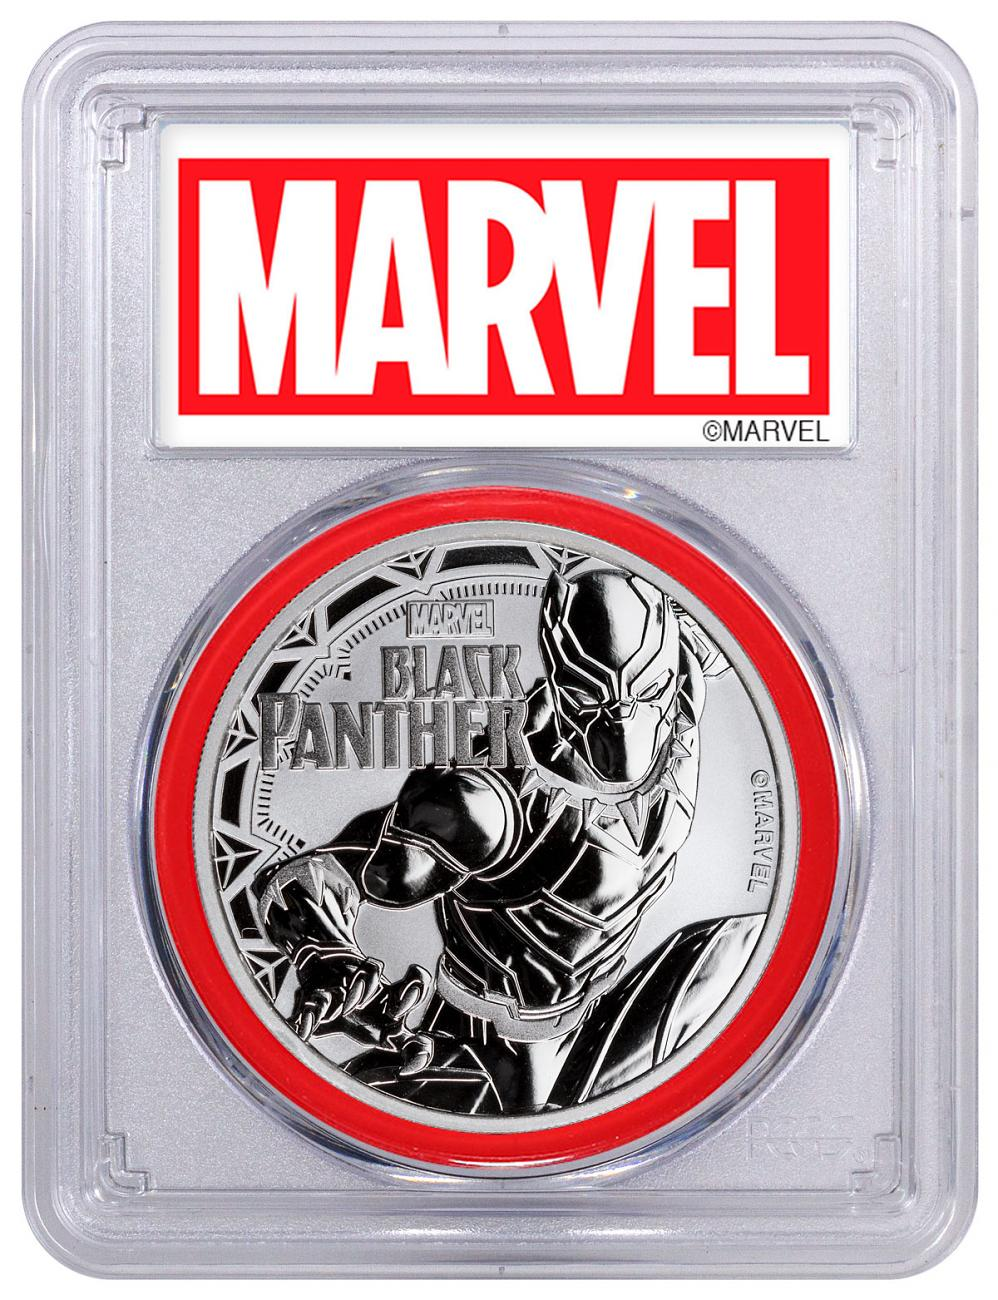 2018 Tuvalu Black Panther 1 oz Silver Marvel Series $1 Coin PCGS MS69 Red Gasket Exclusive Marvel Label